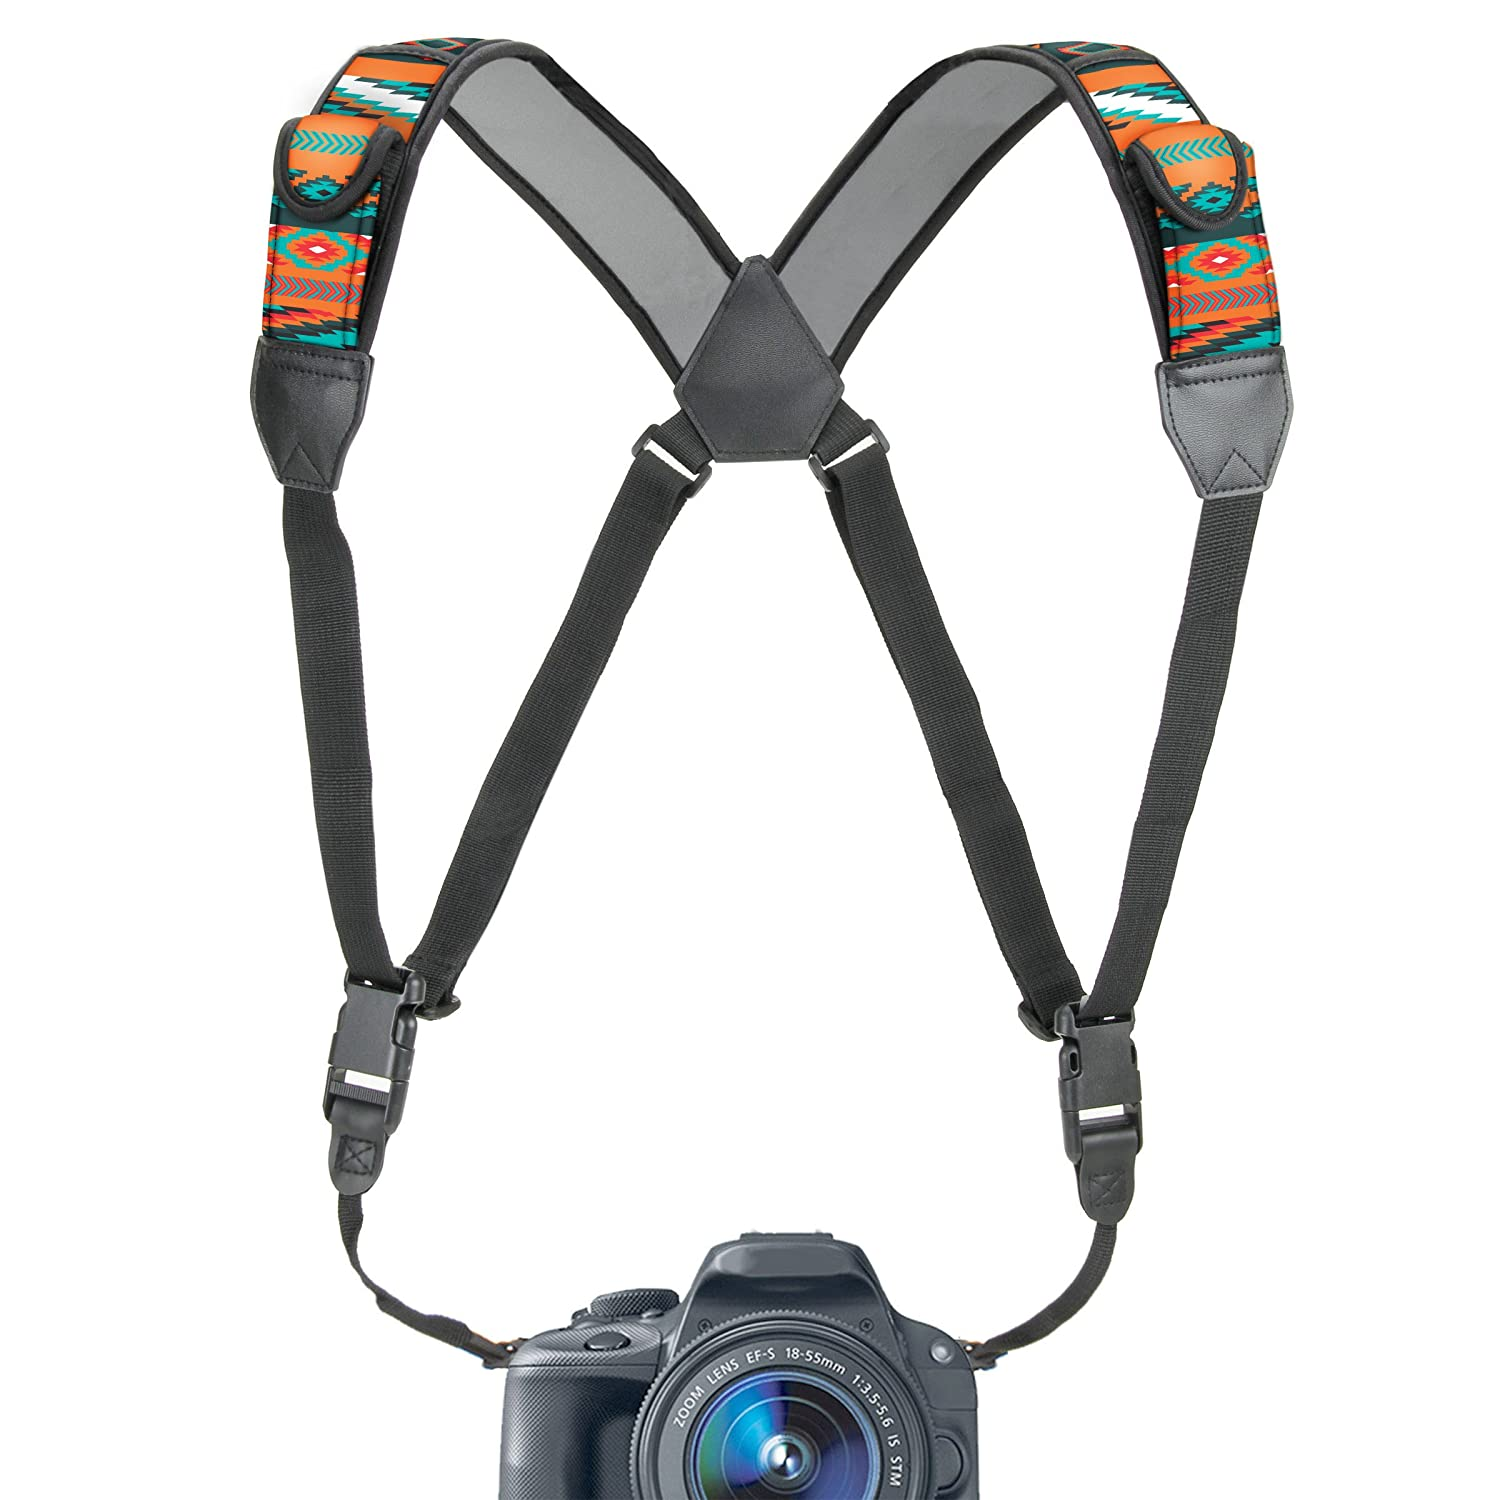 Camera Strap Chest Harness with Southwest Neoprene and Accessory Pockets by USA GEAR - Works with Canon , Nikon , Fujifilm , Sony , Panasonic and More DSLR , Point & Shoot , Mirrorless Cameras Accessory Power GRCMHS0100SWEW